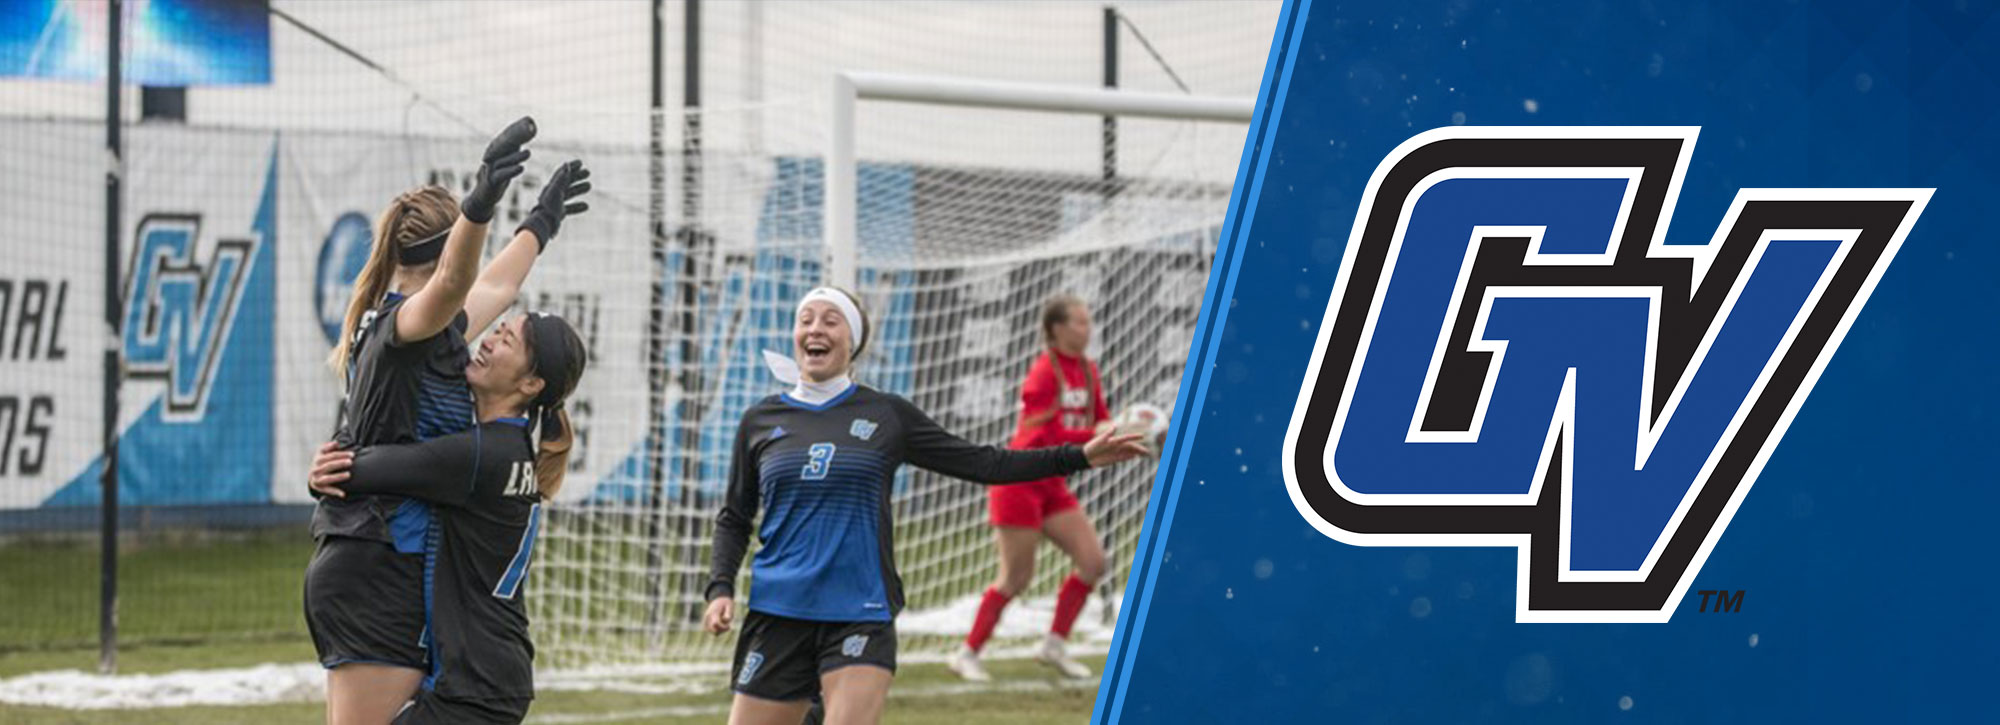 PITTSBURGH BOUND! No. 1 GVSU Advances to Final Four